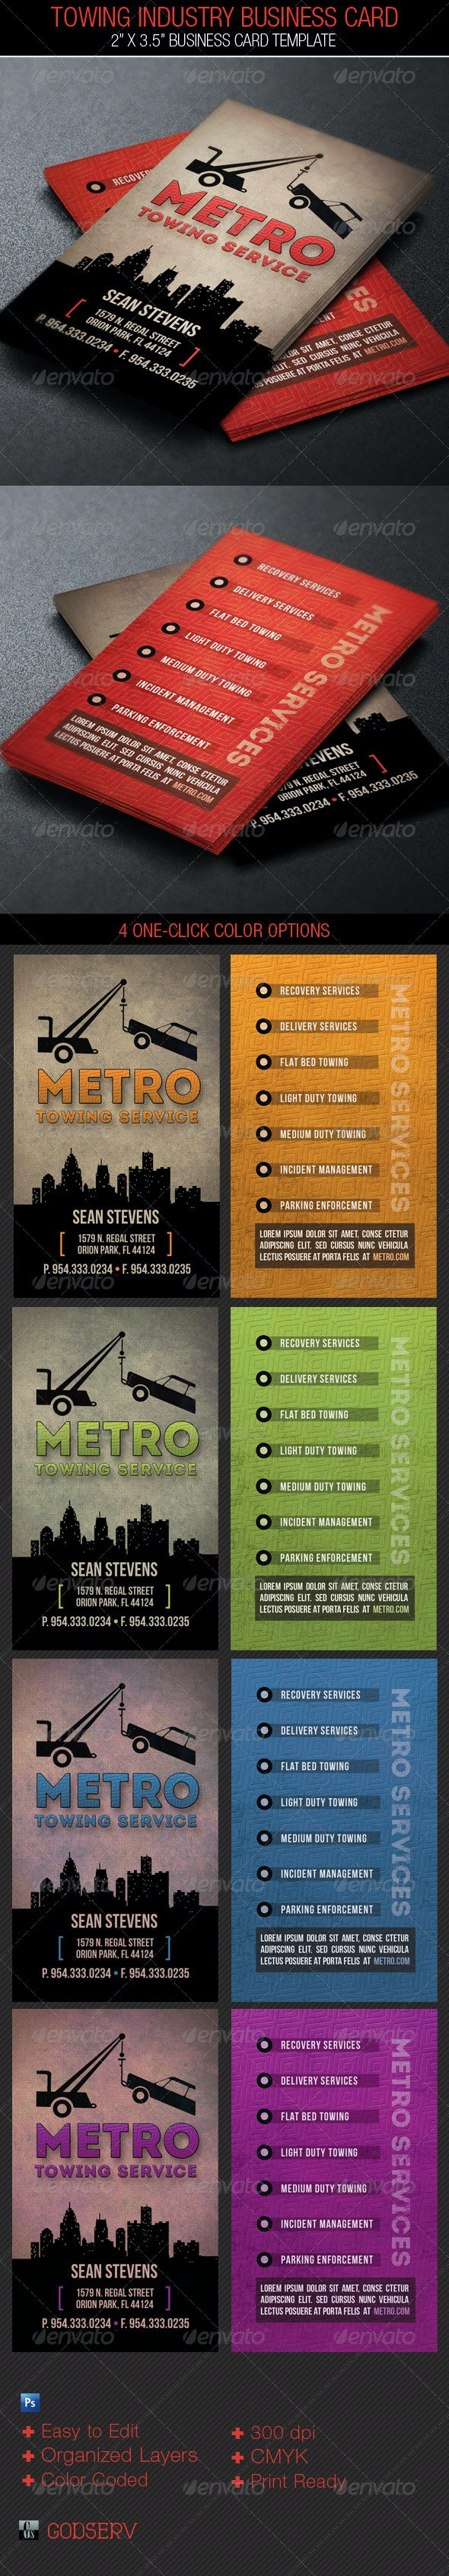 Towing Industry Business Card Template - Industry Specific Business Cards